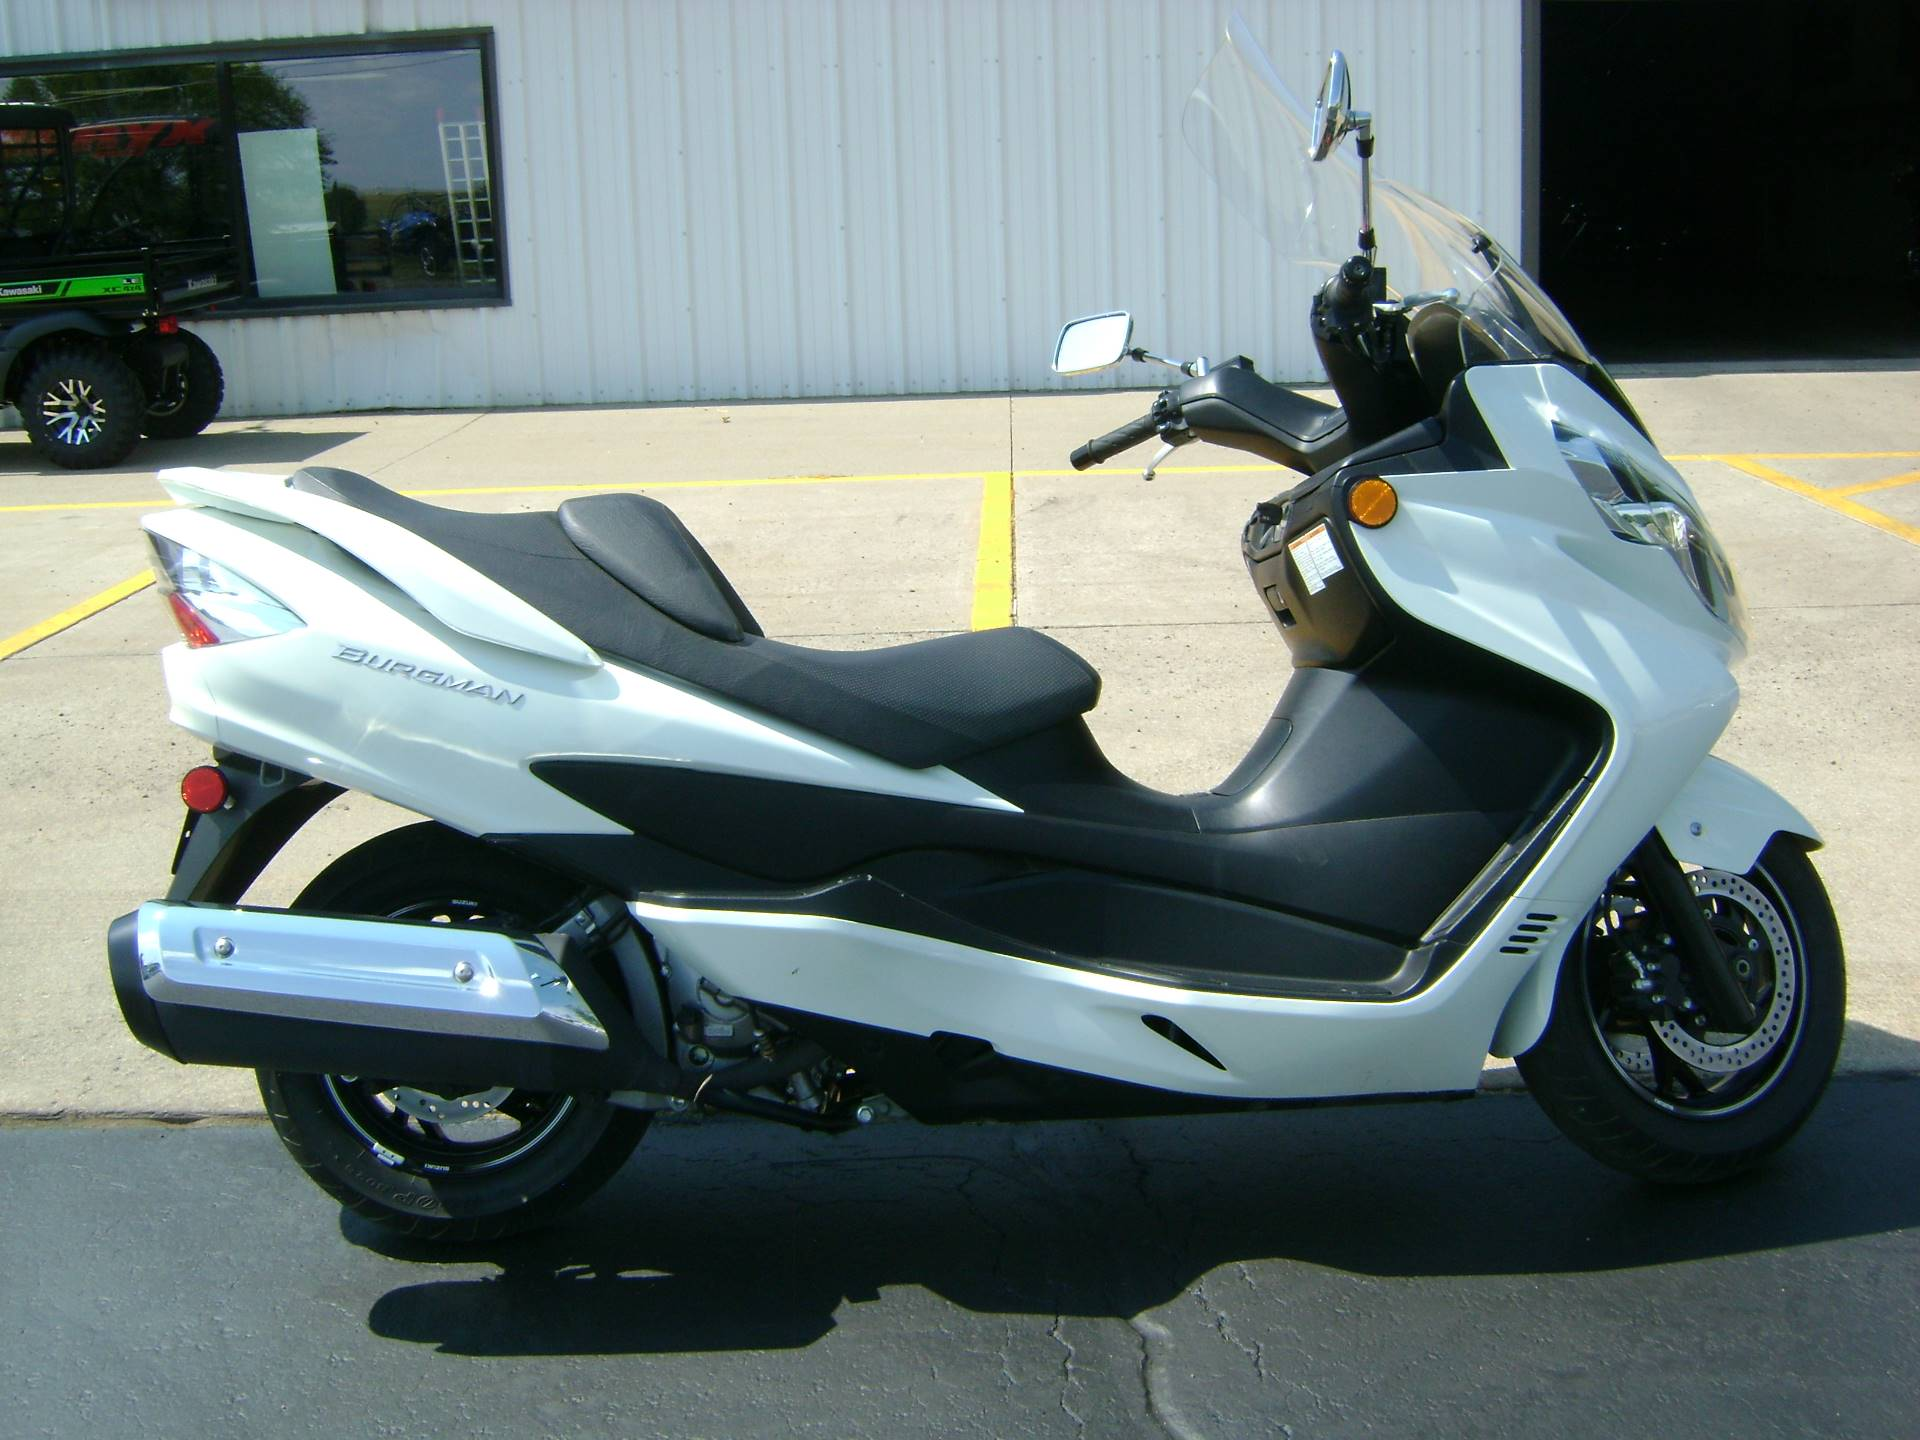 2012 Suzuki BURGMAN 400 ABS in Freeport, Illinois - Photo 1